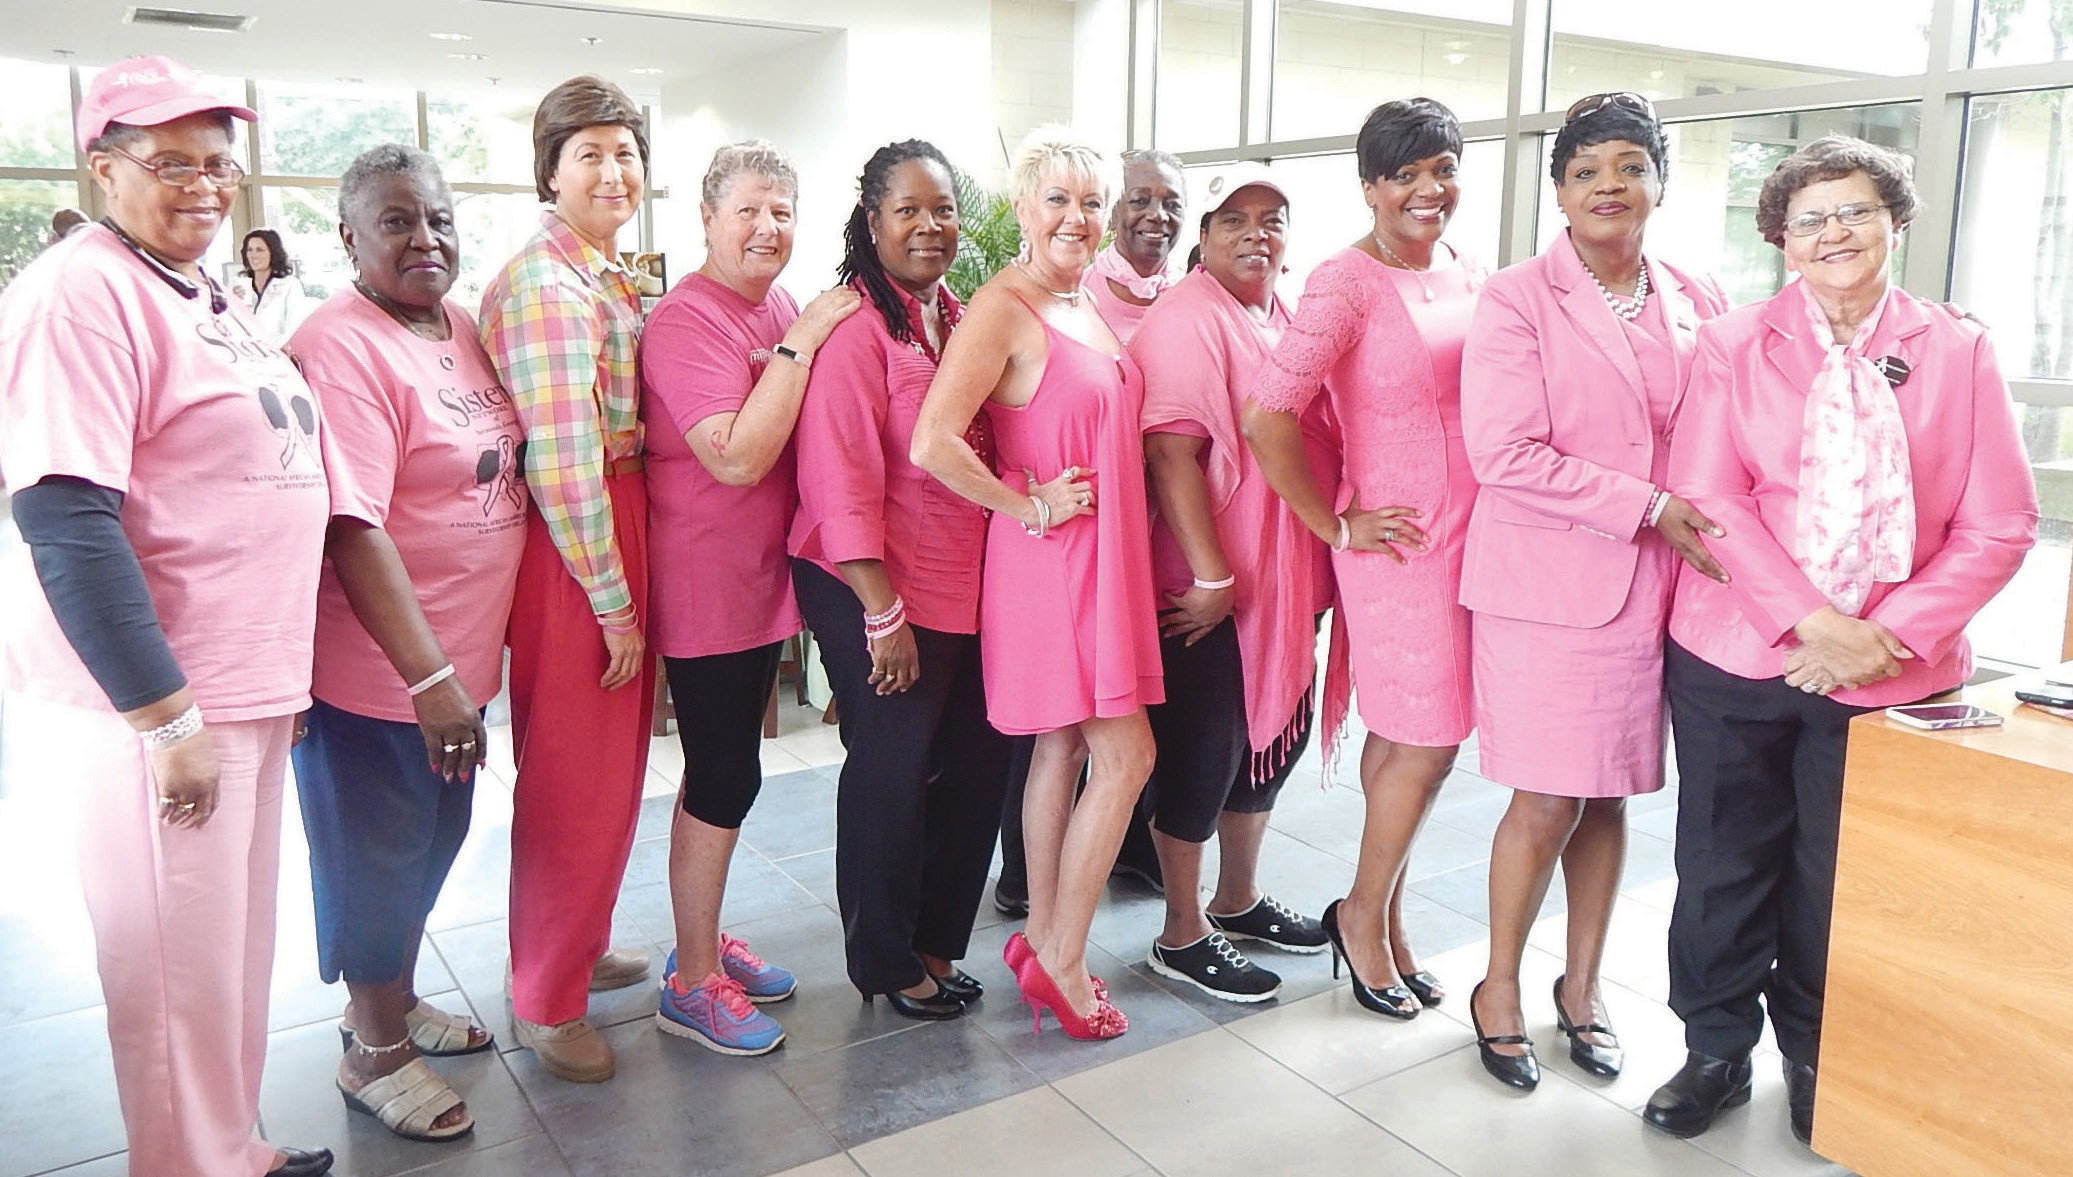 Tina Tyus-Shaw stands with other breast cancer survivors